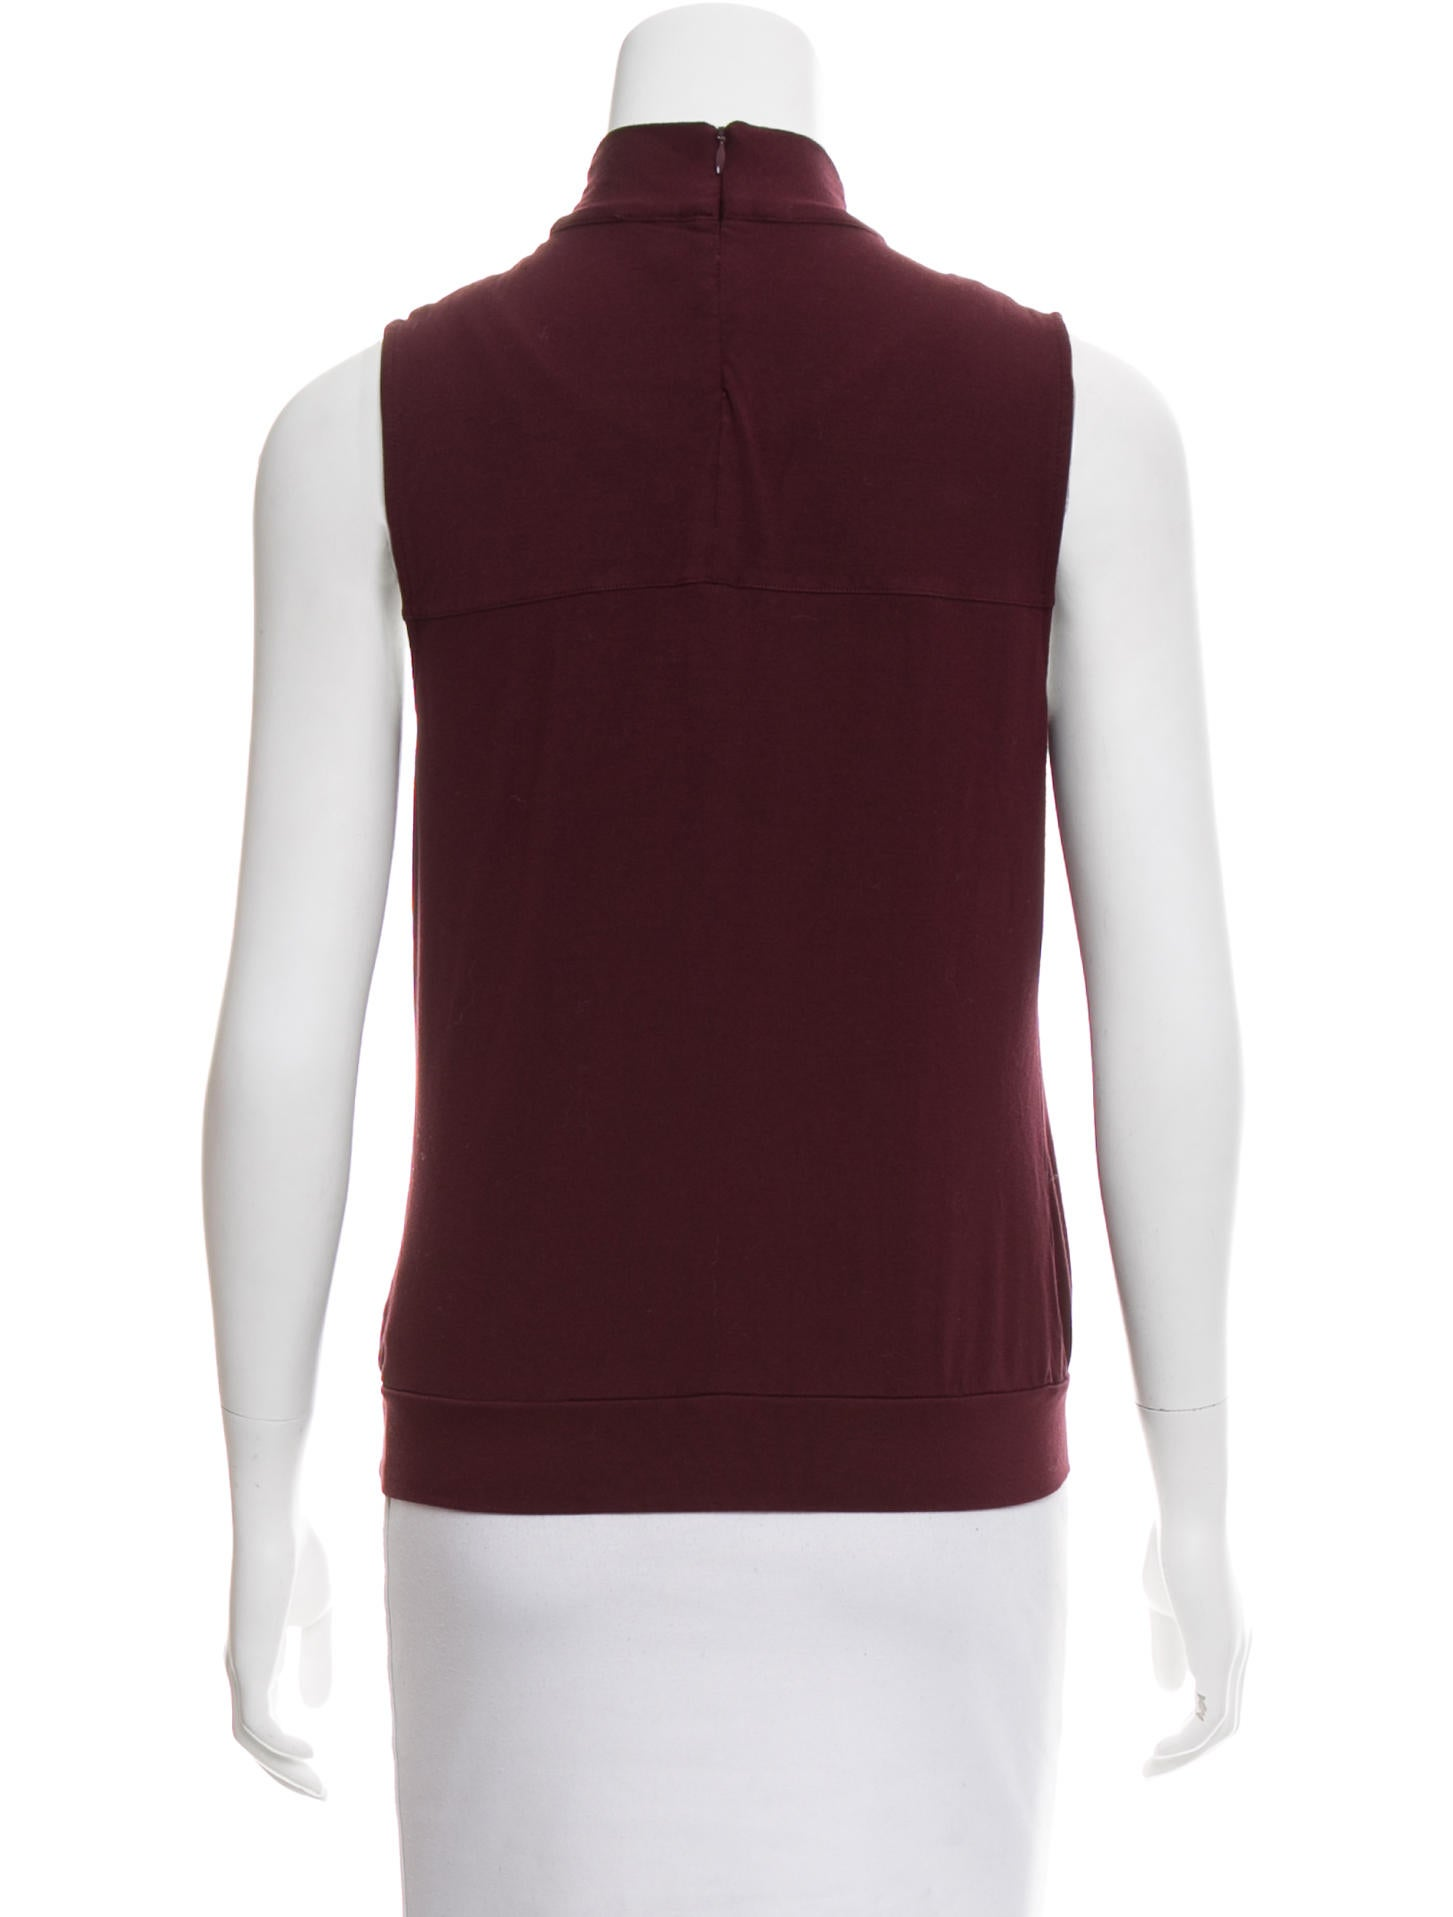 Karen millen sleeveless mock neck top clothing for Sleeveless mock turtleneck shirts